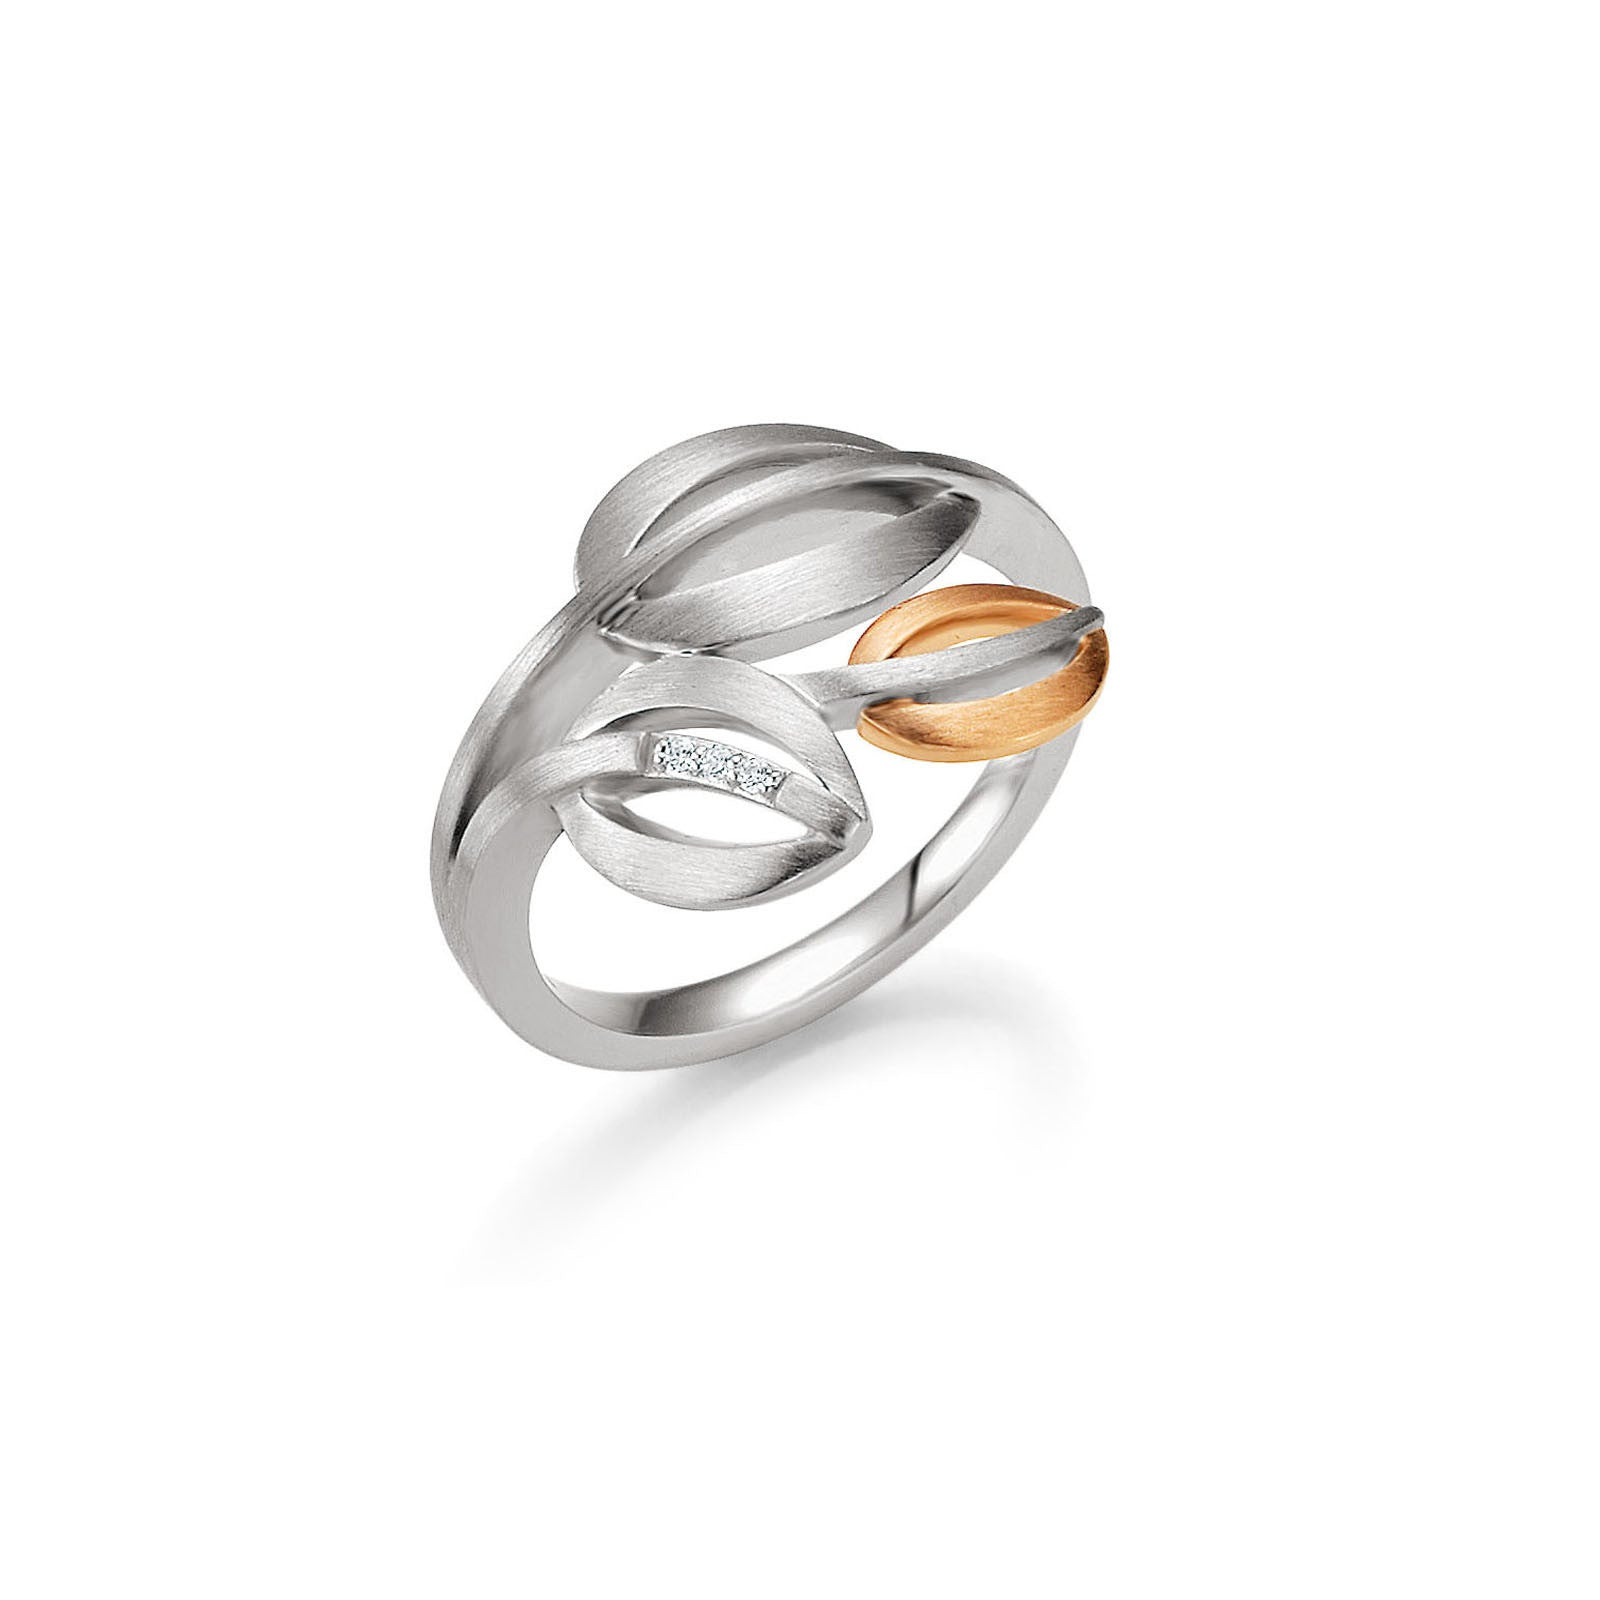 Sterling Silver, White Sapphire and 14k Rose Gold Accent Ring by Breuning